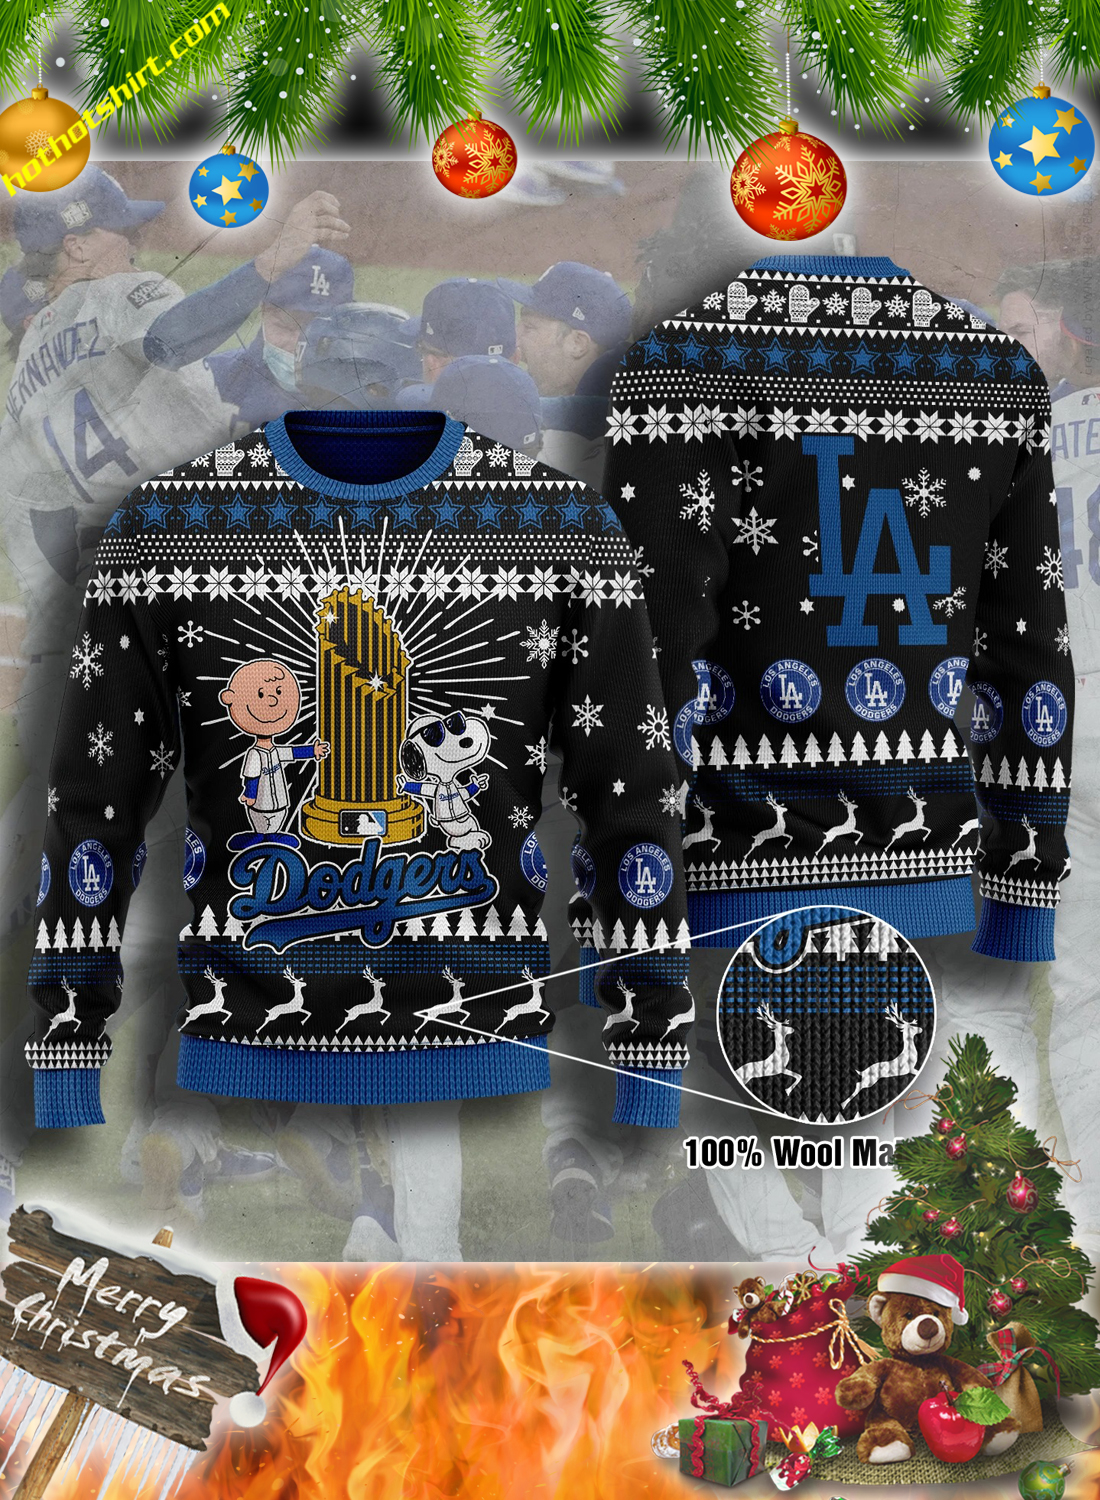 Snoopy and charlie brown LA dodgers christmas sweater